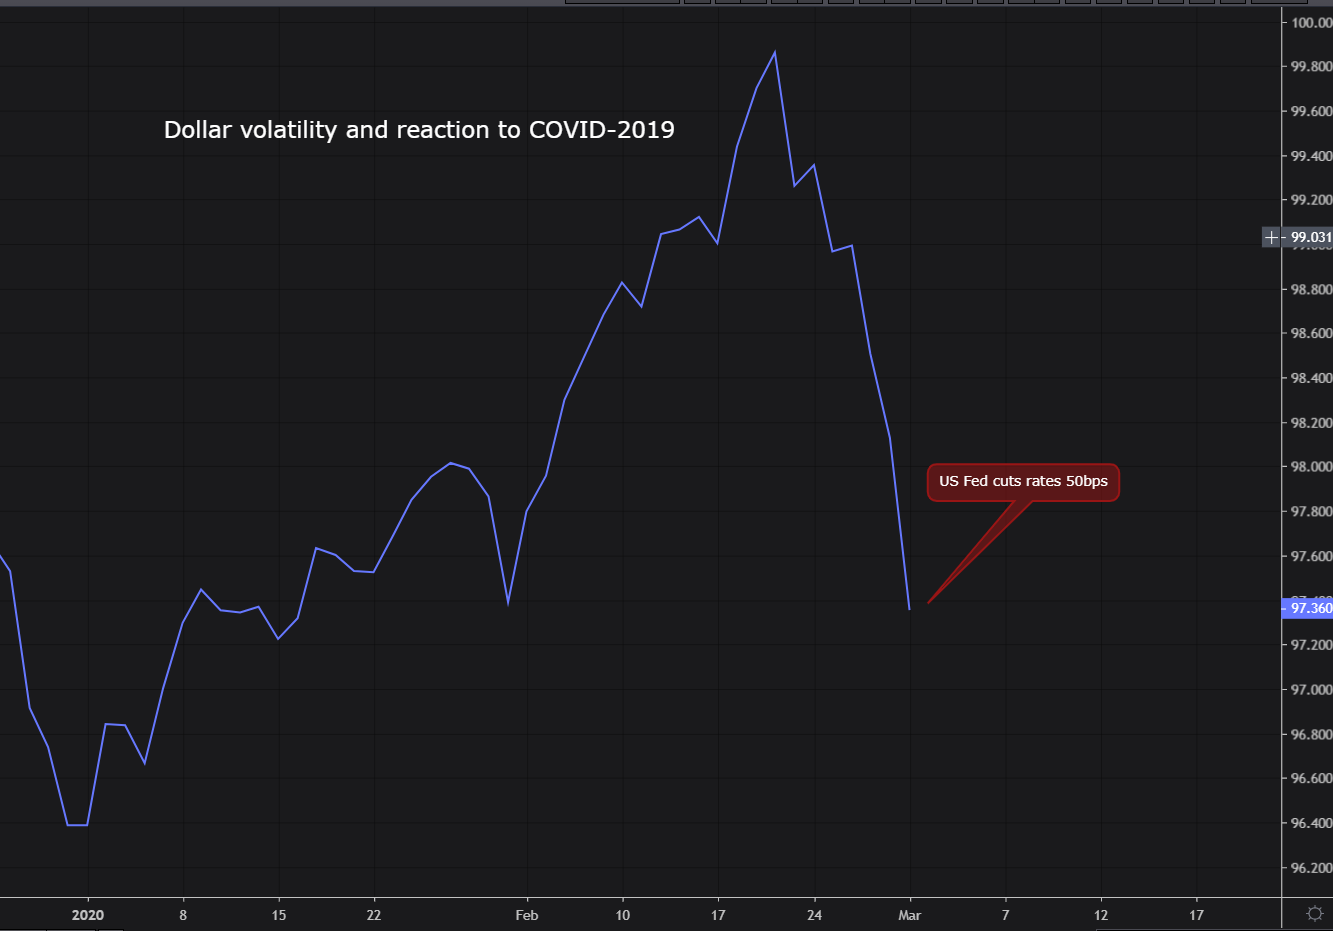 Dollar volatility and reaction to COVID-2019 graph